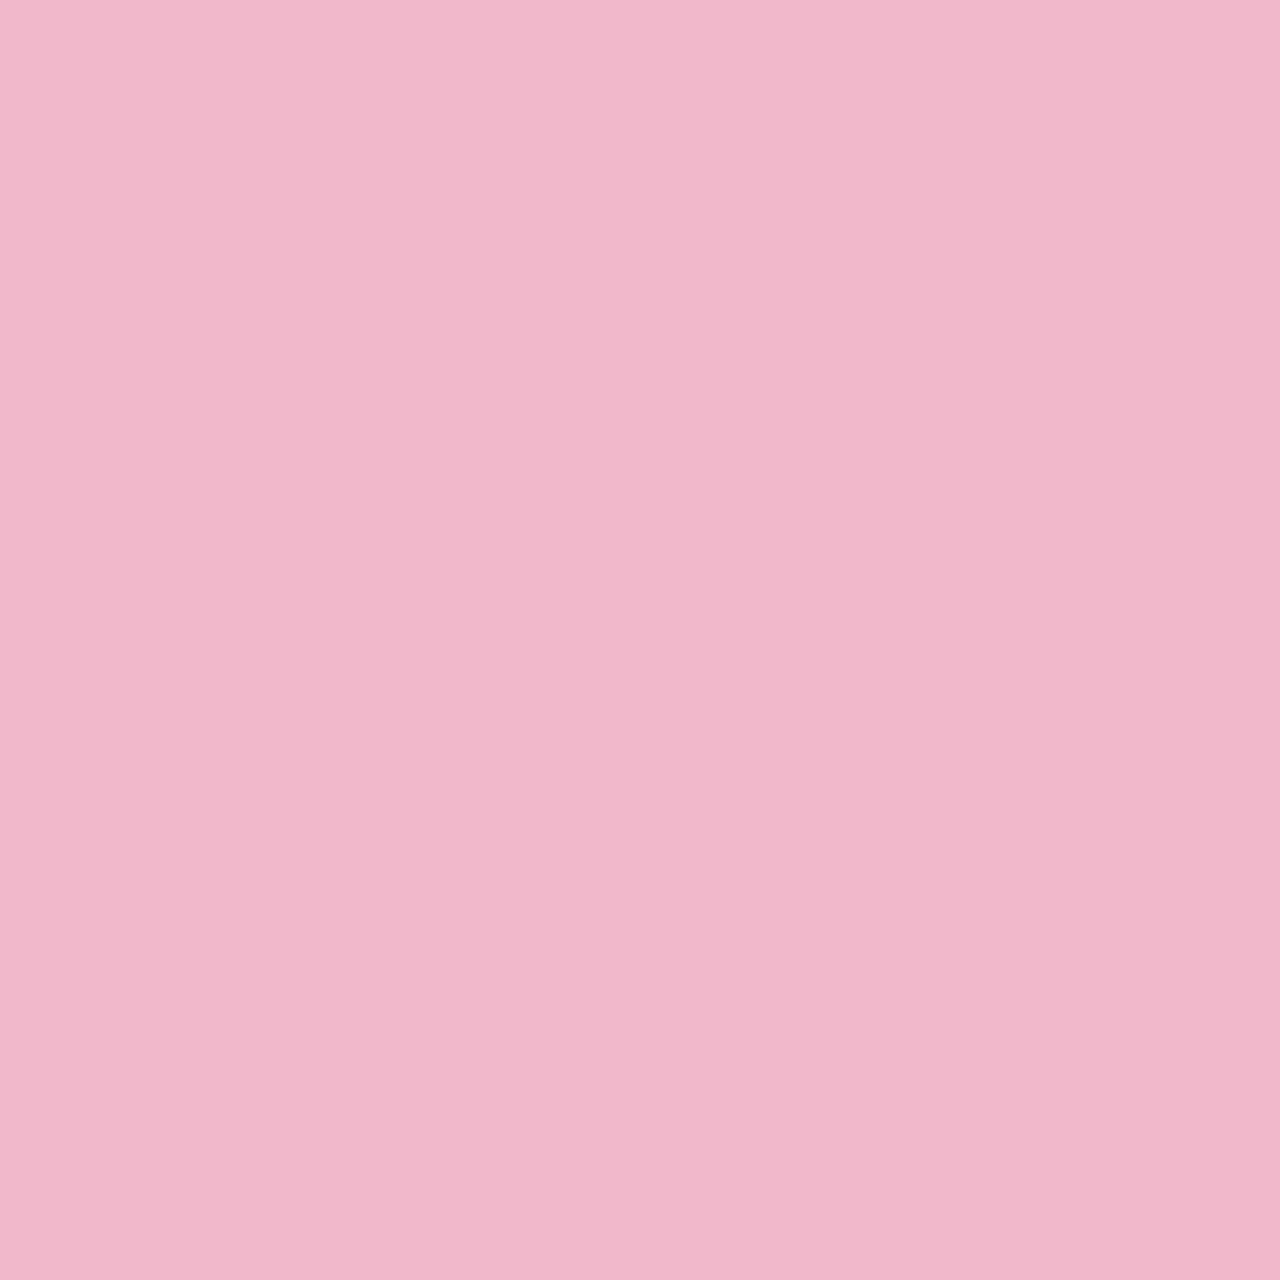 #0035 Rosco Gels Roscolux Light Pink, 20x24""